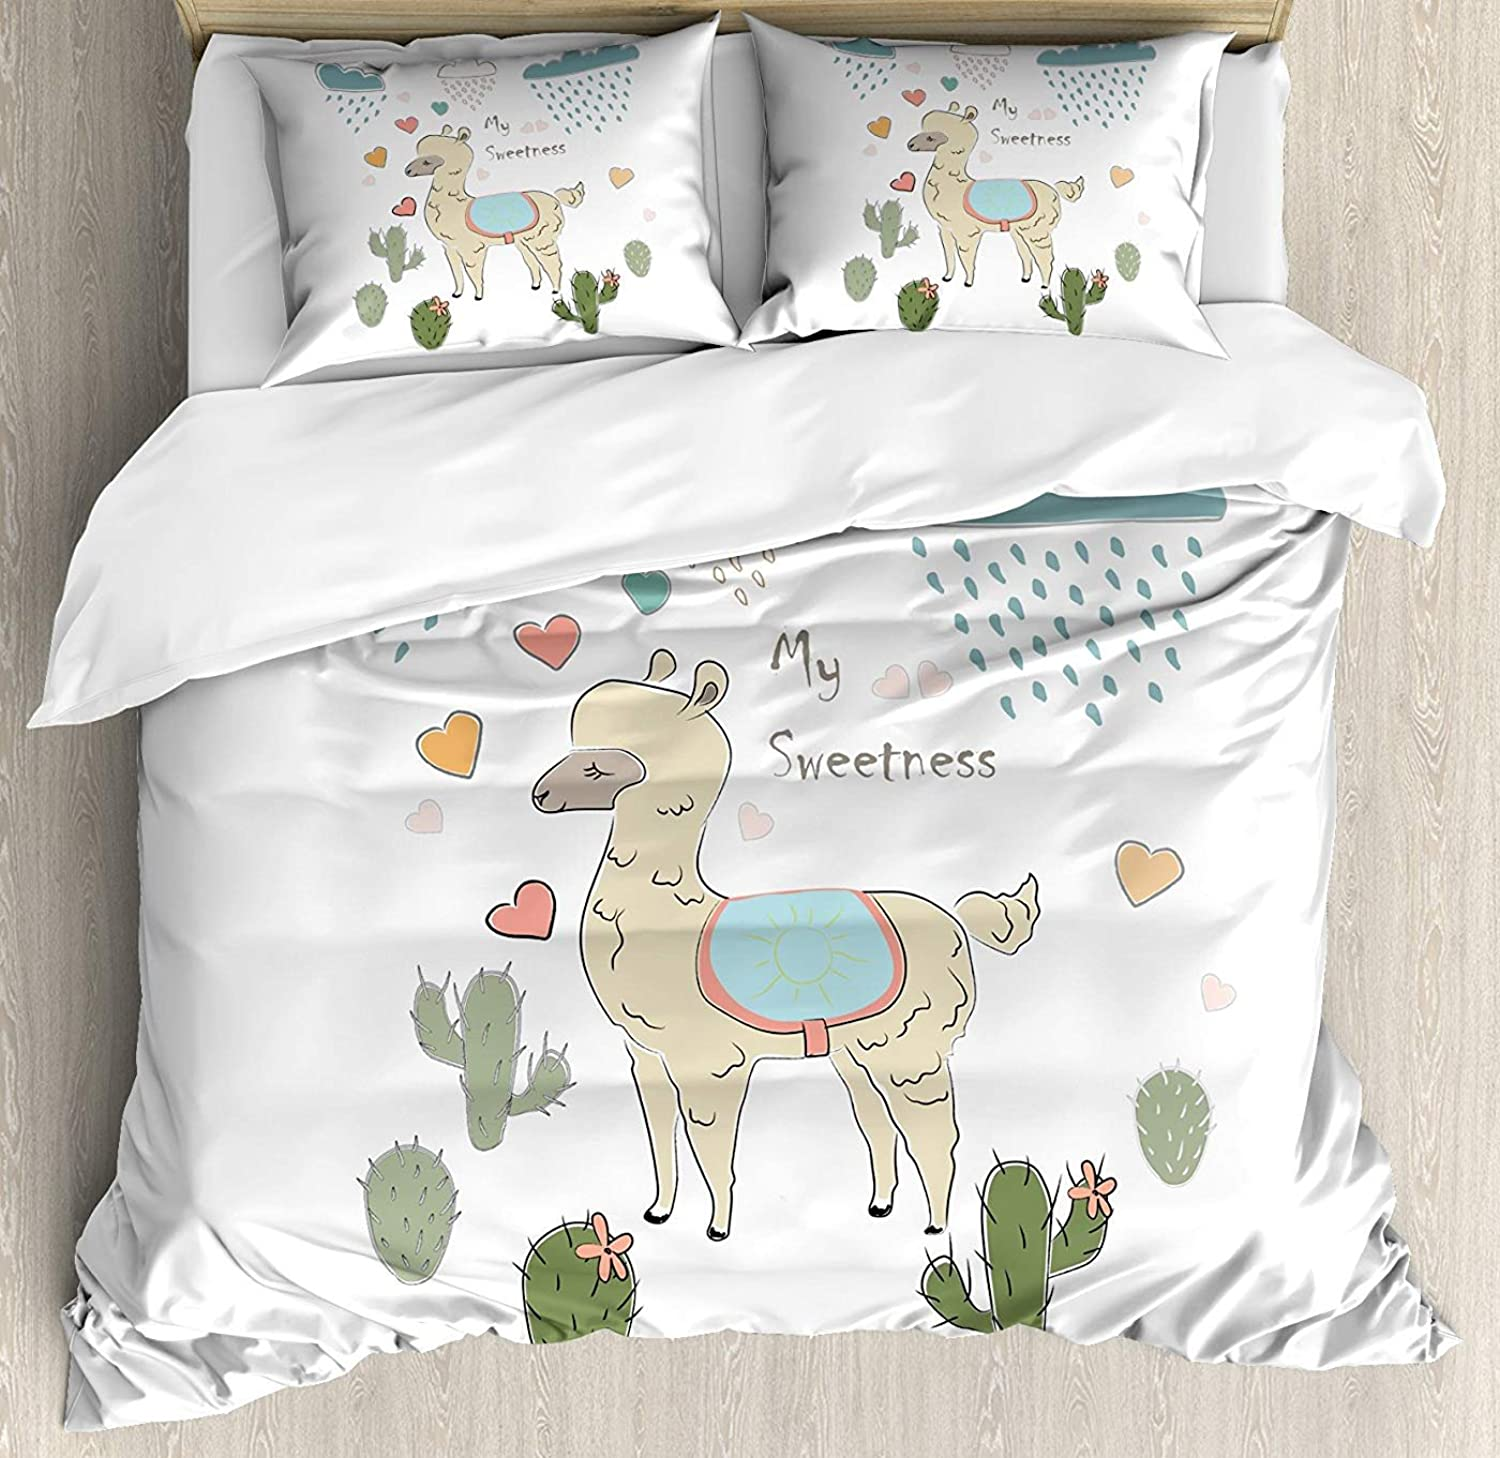 Fandim Fly Llama Bedding Set Full Size, Cute Abstract Alpaca in The Rain with Cactuses Brush Strokes Effect Illustration,Comforter Cover Sets for All Season, Multicolor